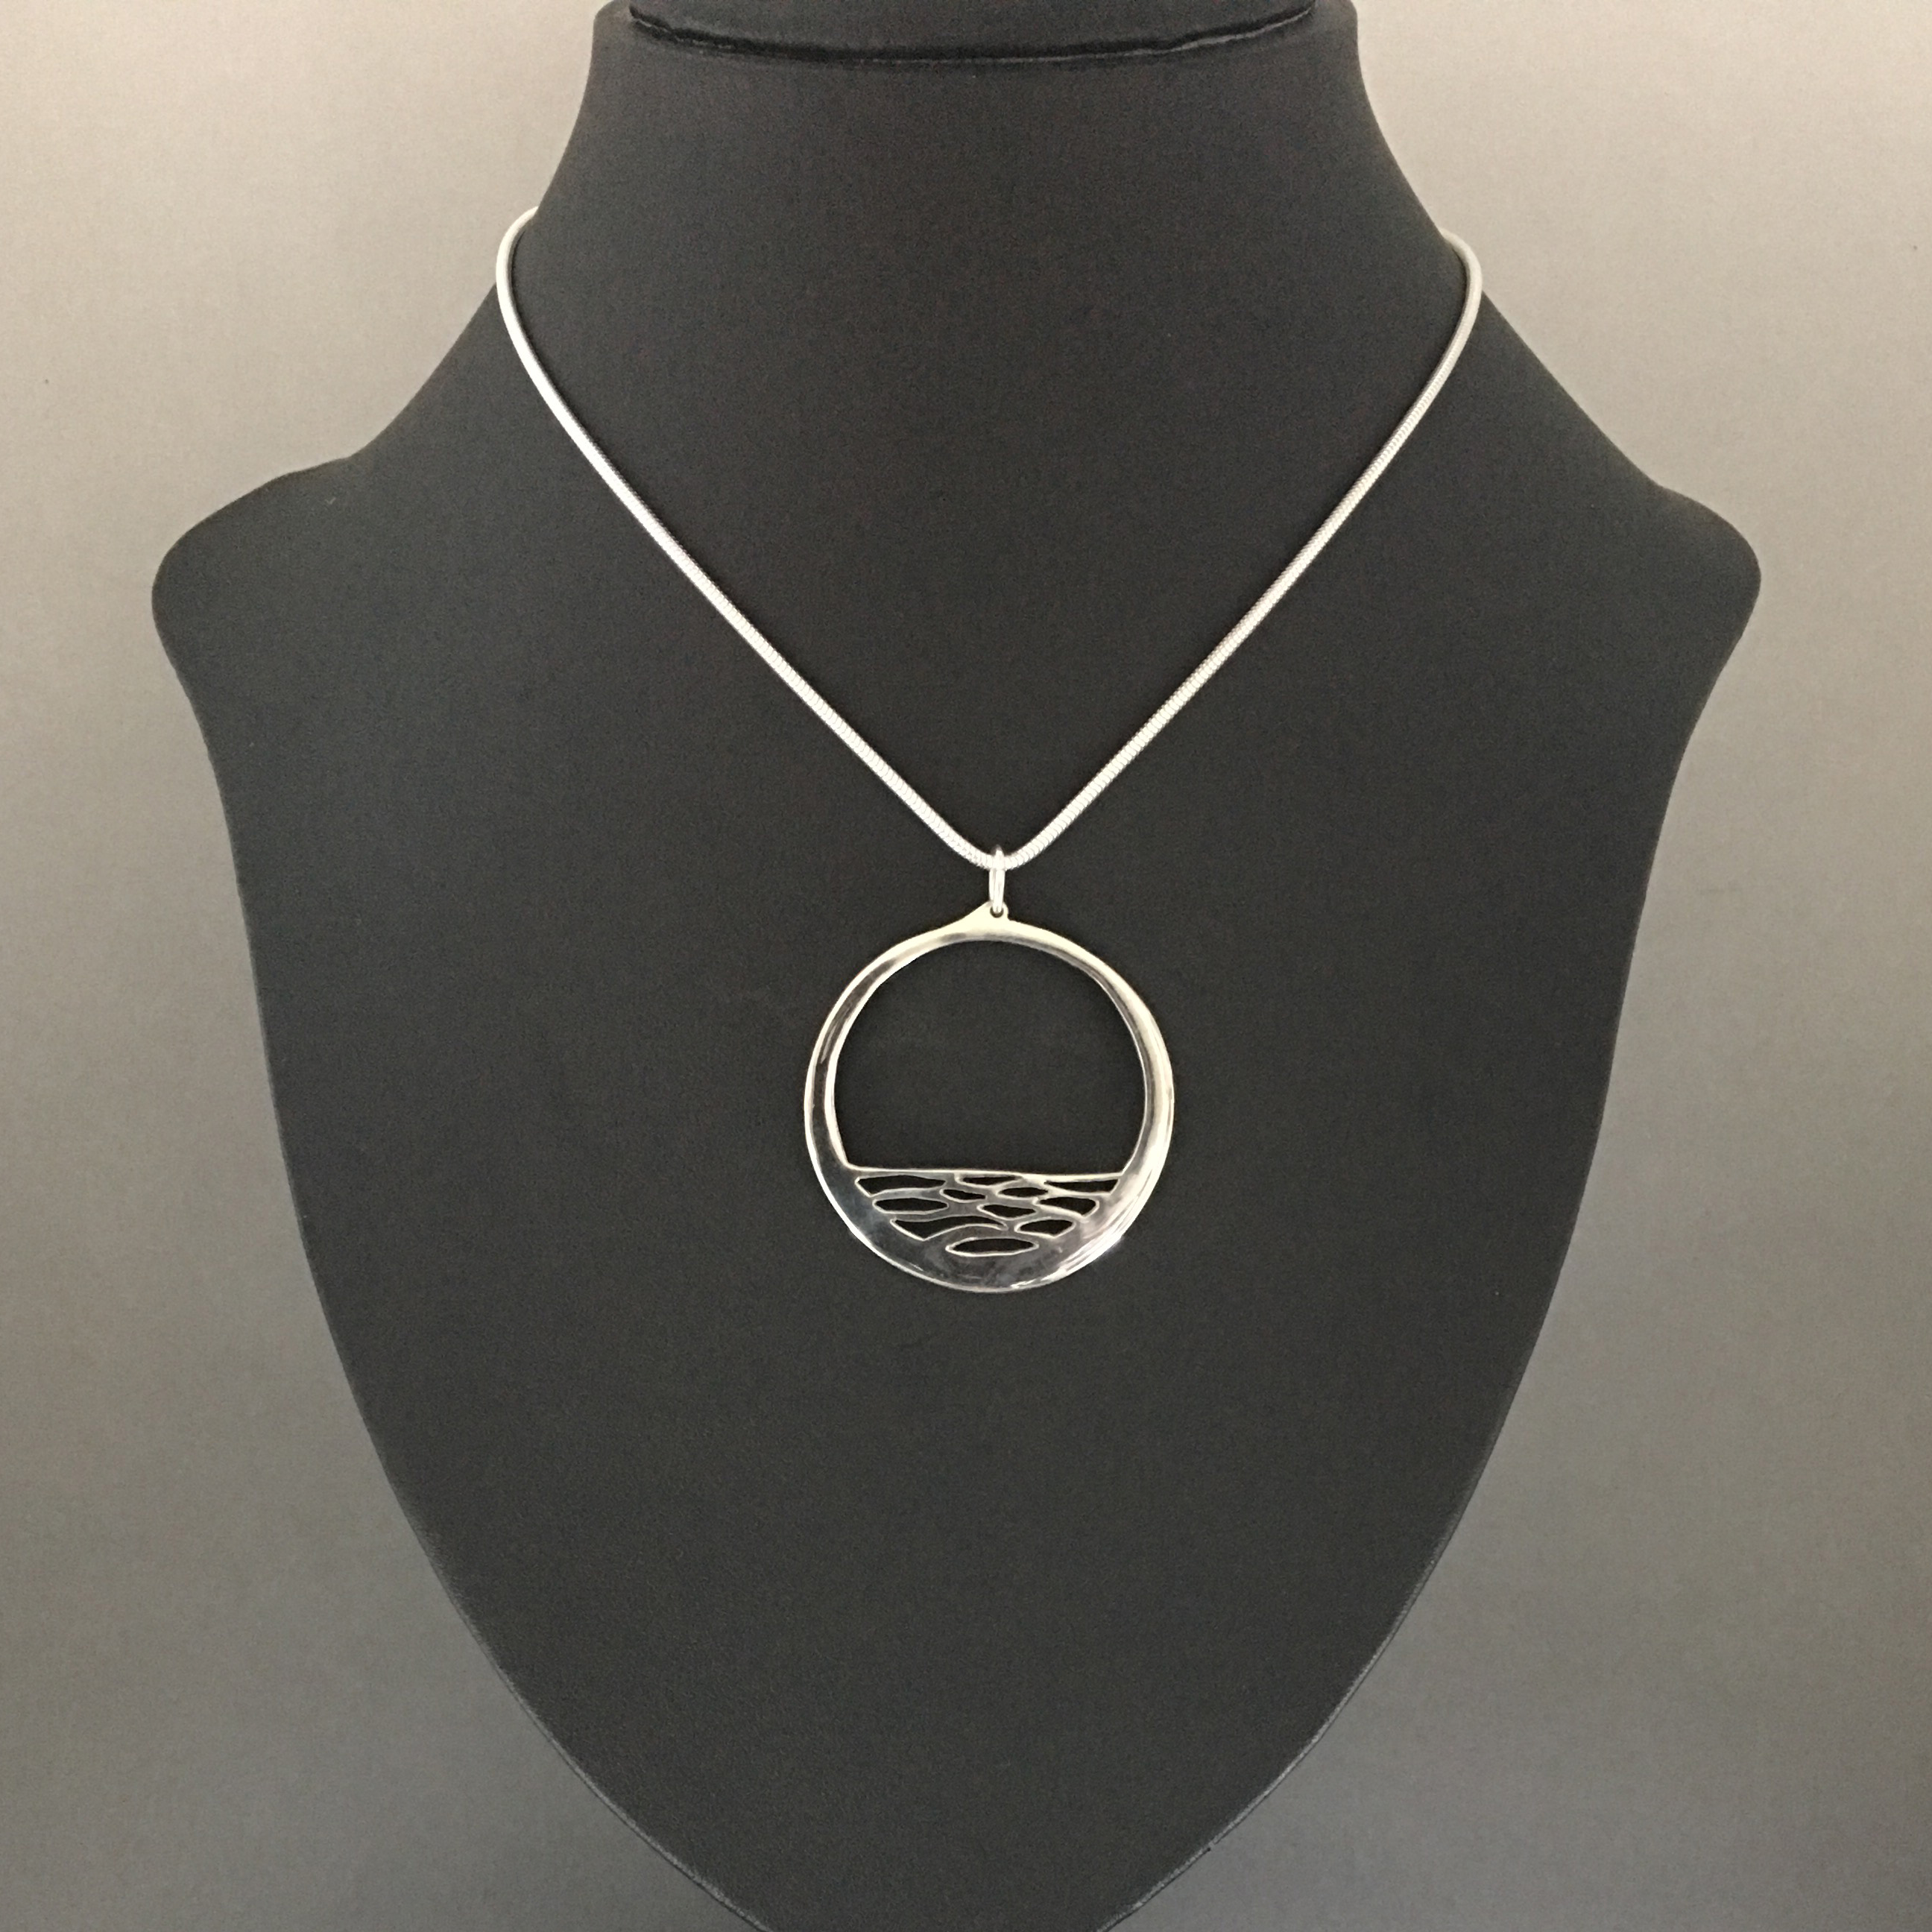 Calm sterling silver pendant by Kangaroo Island silversmith Fred Peters